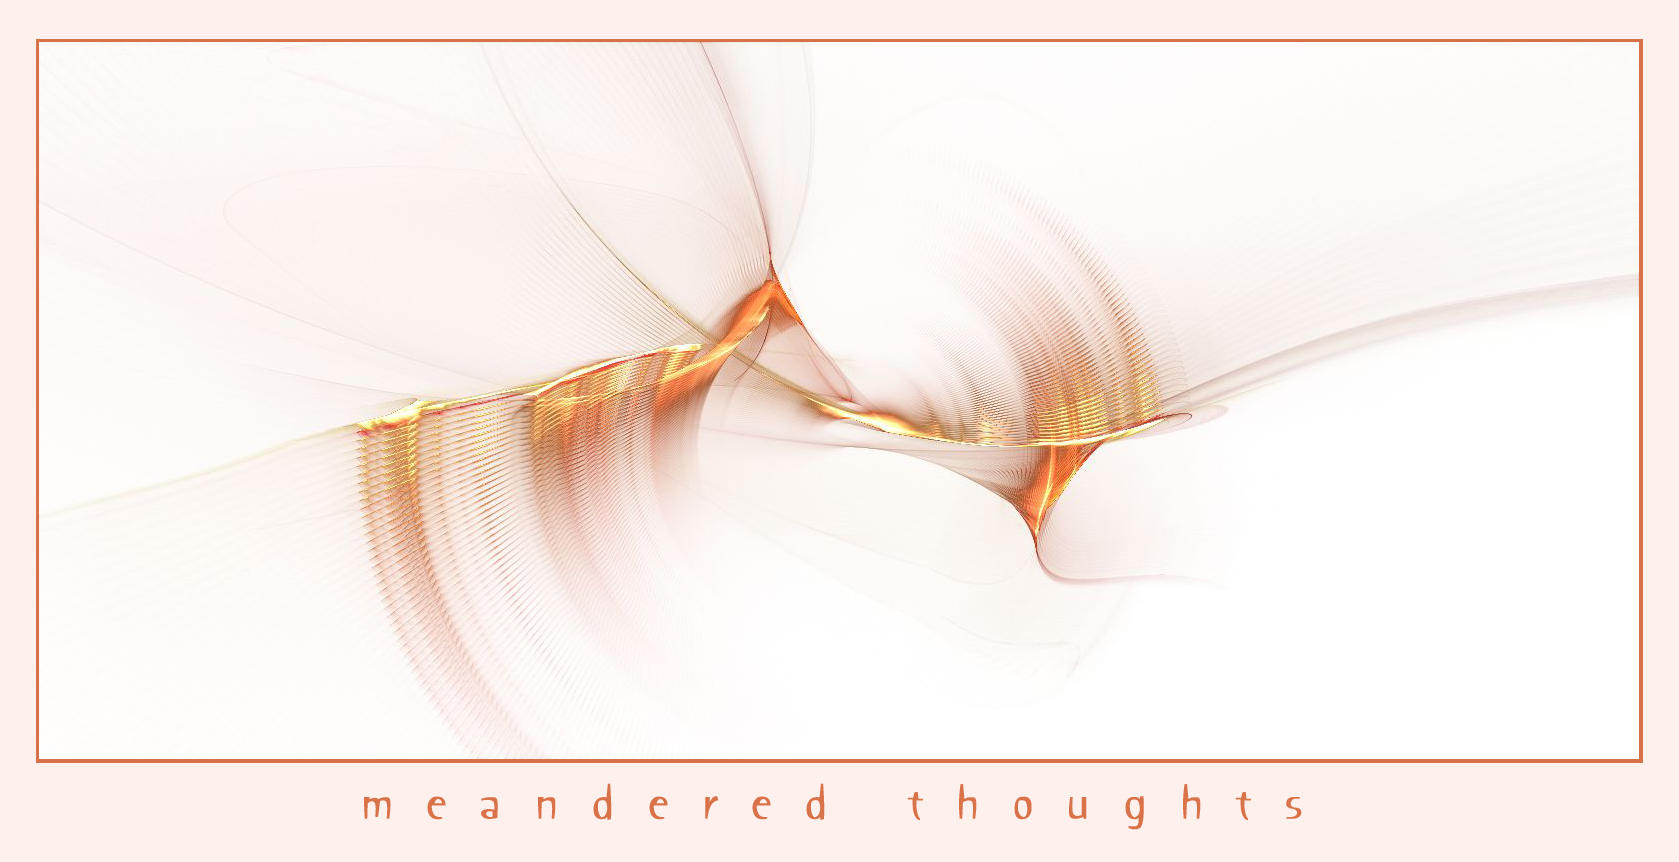 Meandered Thoughts by DeepChrome